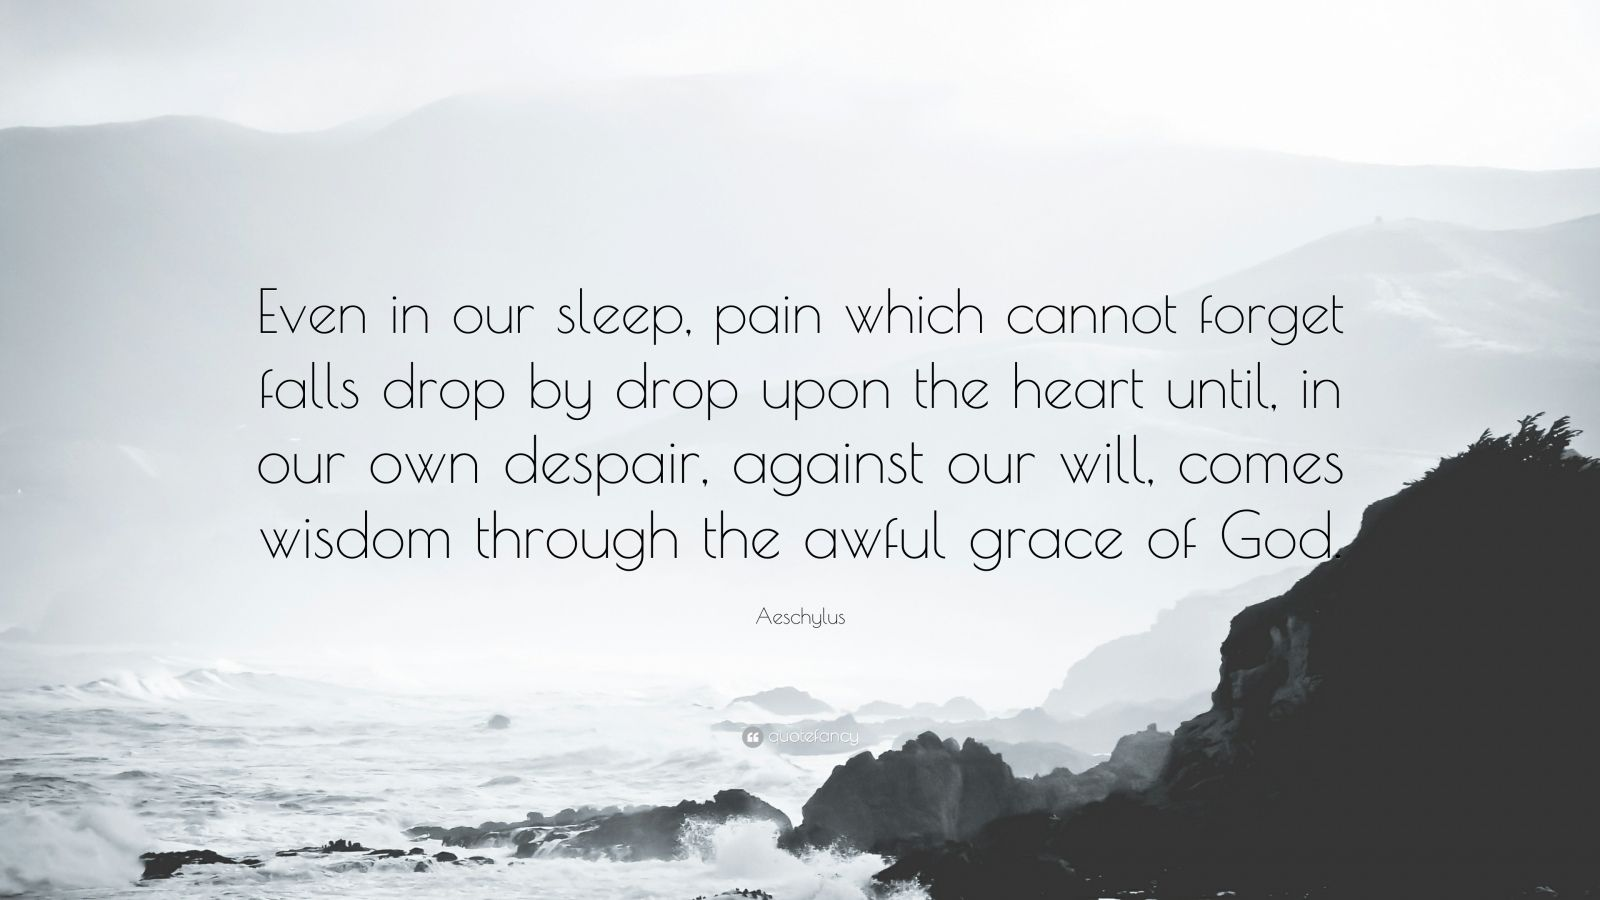 """Aeschylus Quote: """"Even in our sleep, pain which cannot forget falls drop by drop upon the heart until, in our own despair, against our will, comes wisdom through the awful grace of God."""""""